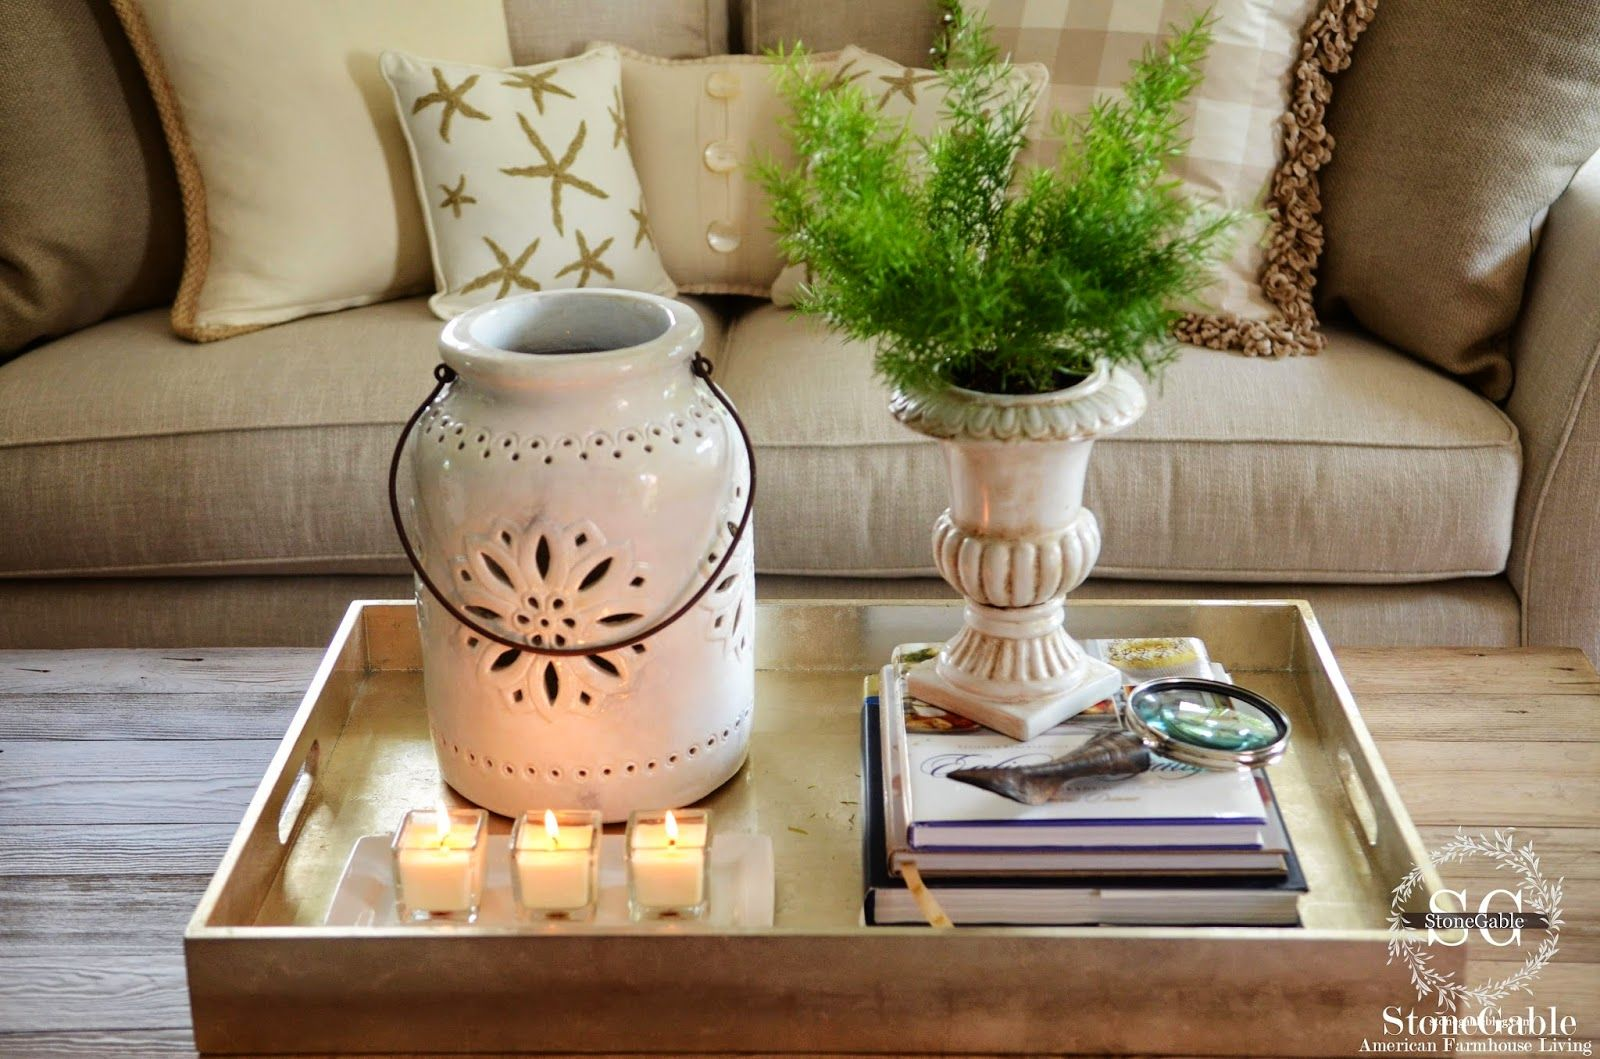 Bandejas Decoracion Salon 5 Tips To Style A Coffee Table Like A Pro Tablescape